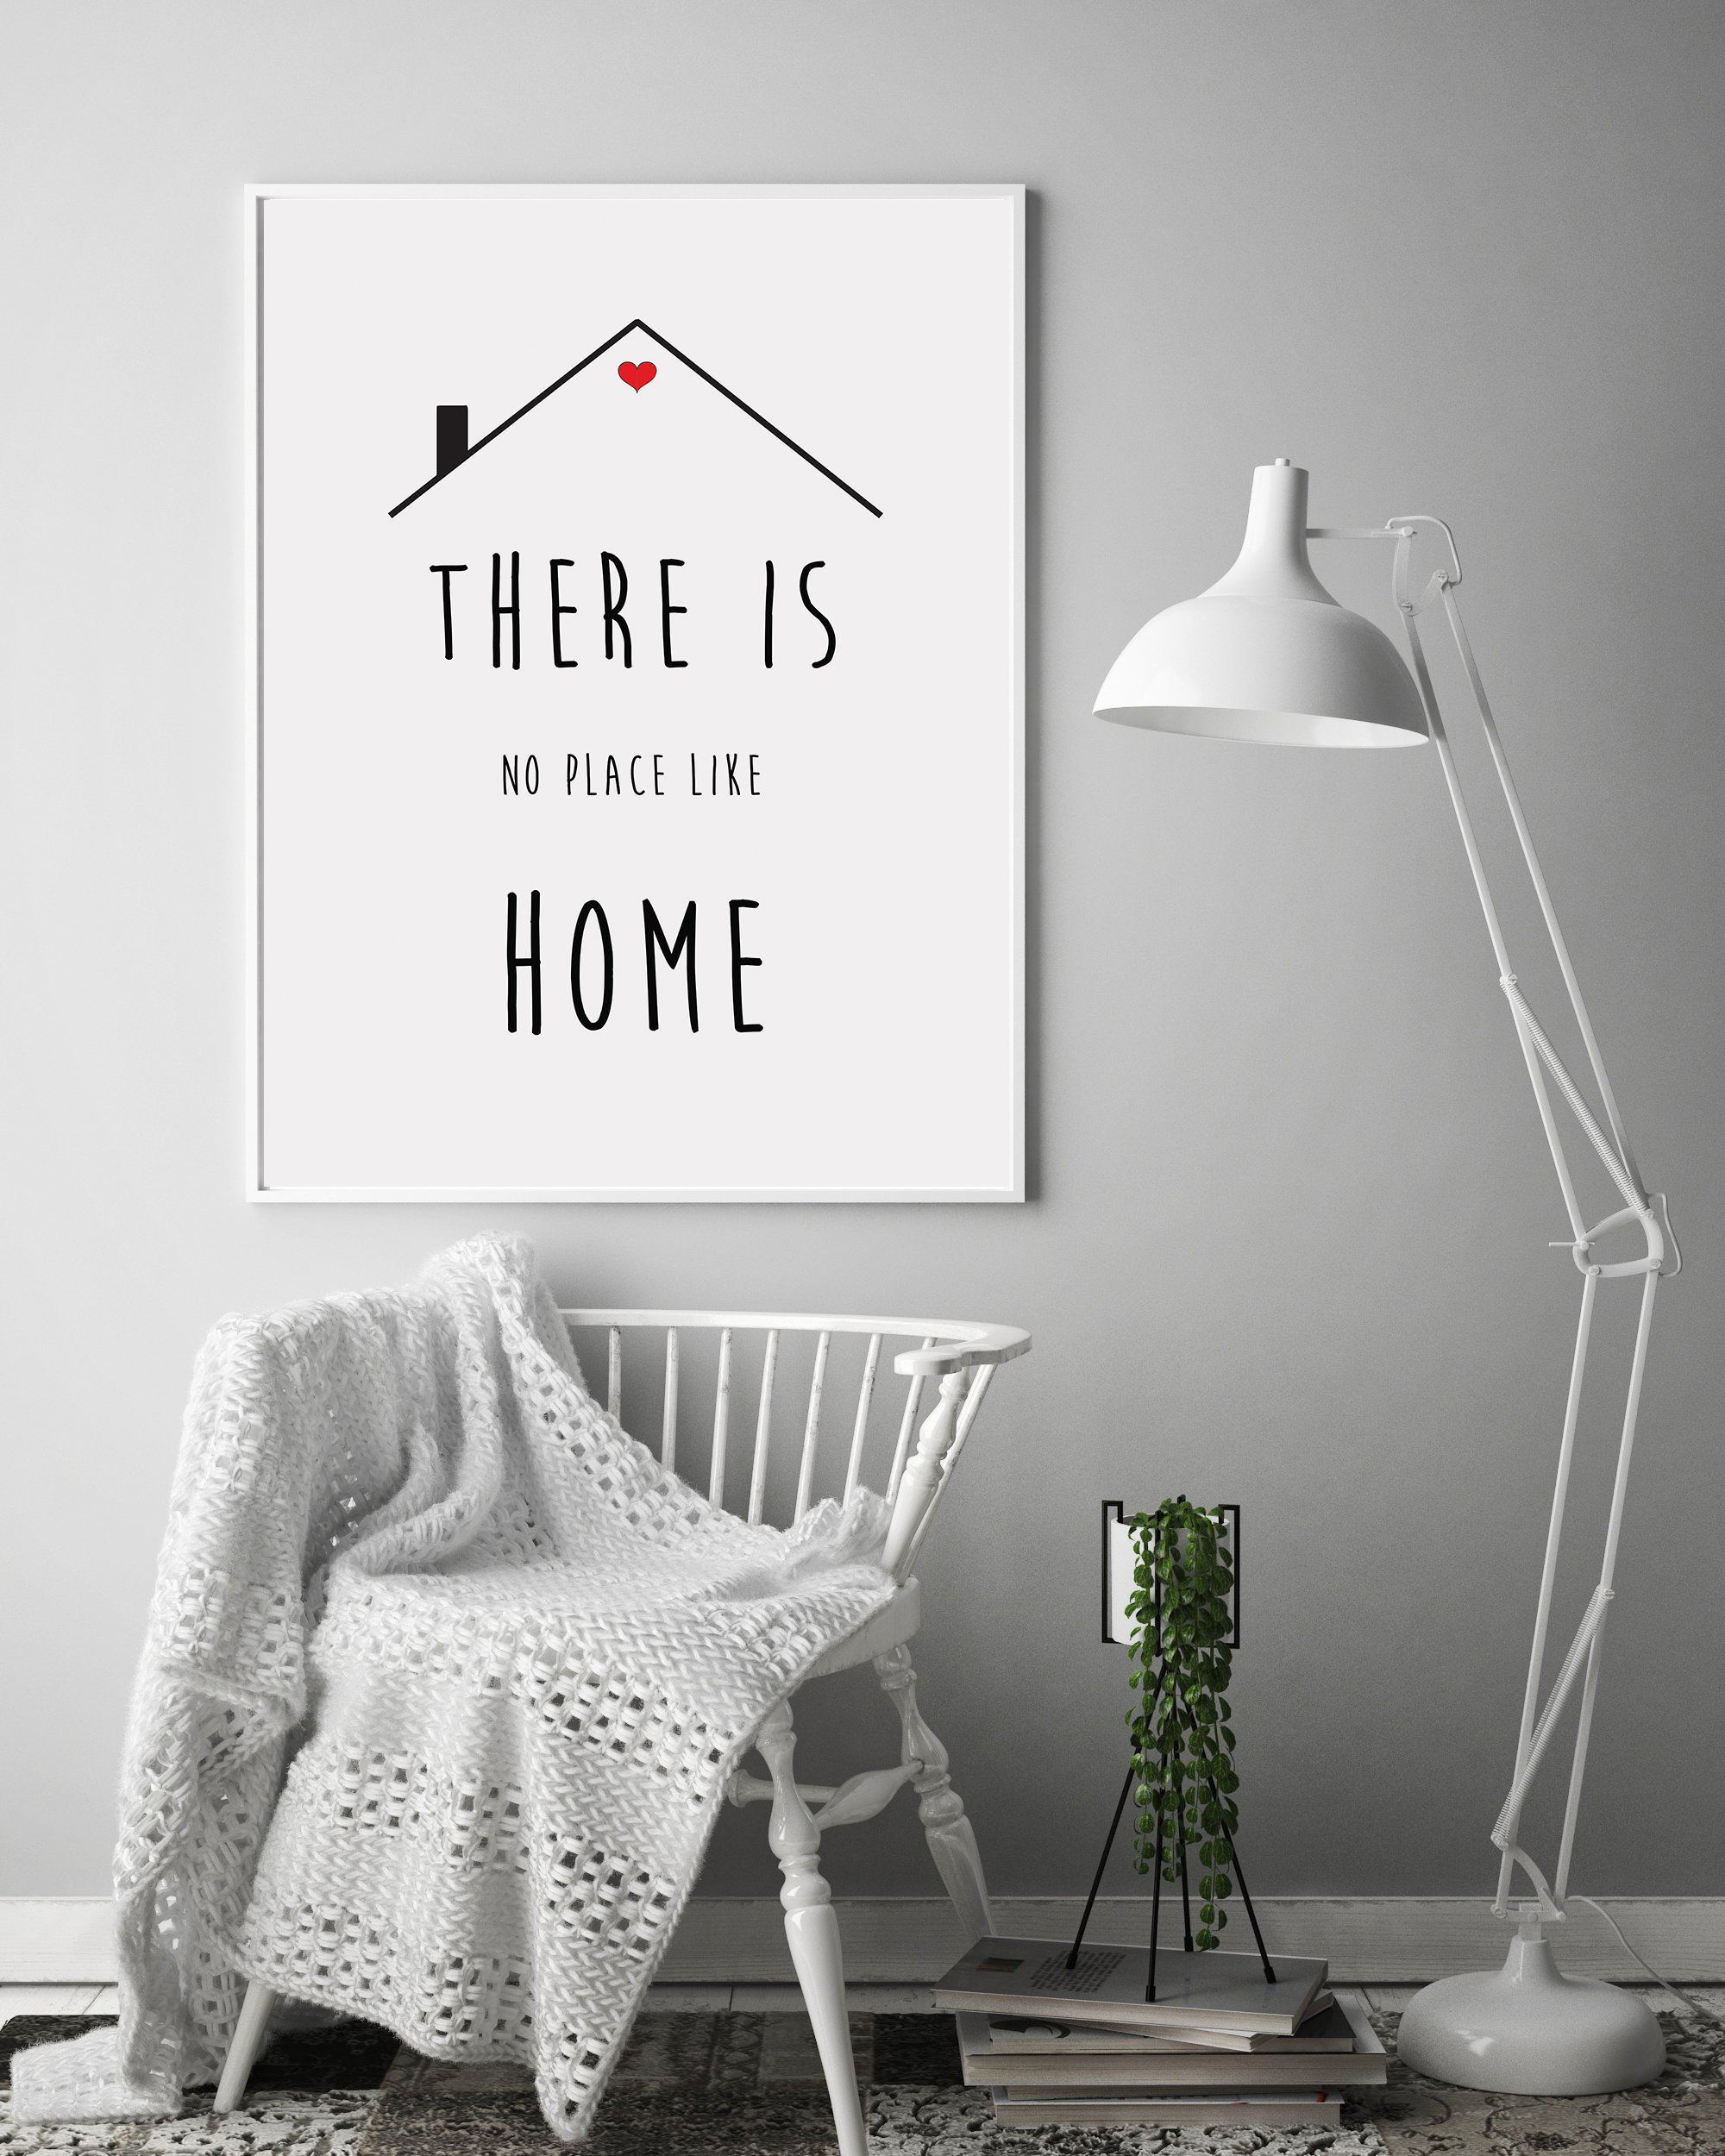 Minimalist Wall Art Quotes, Printable Home Quotes Poster example image 6